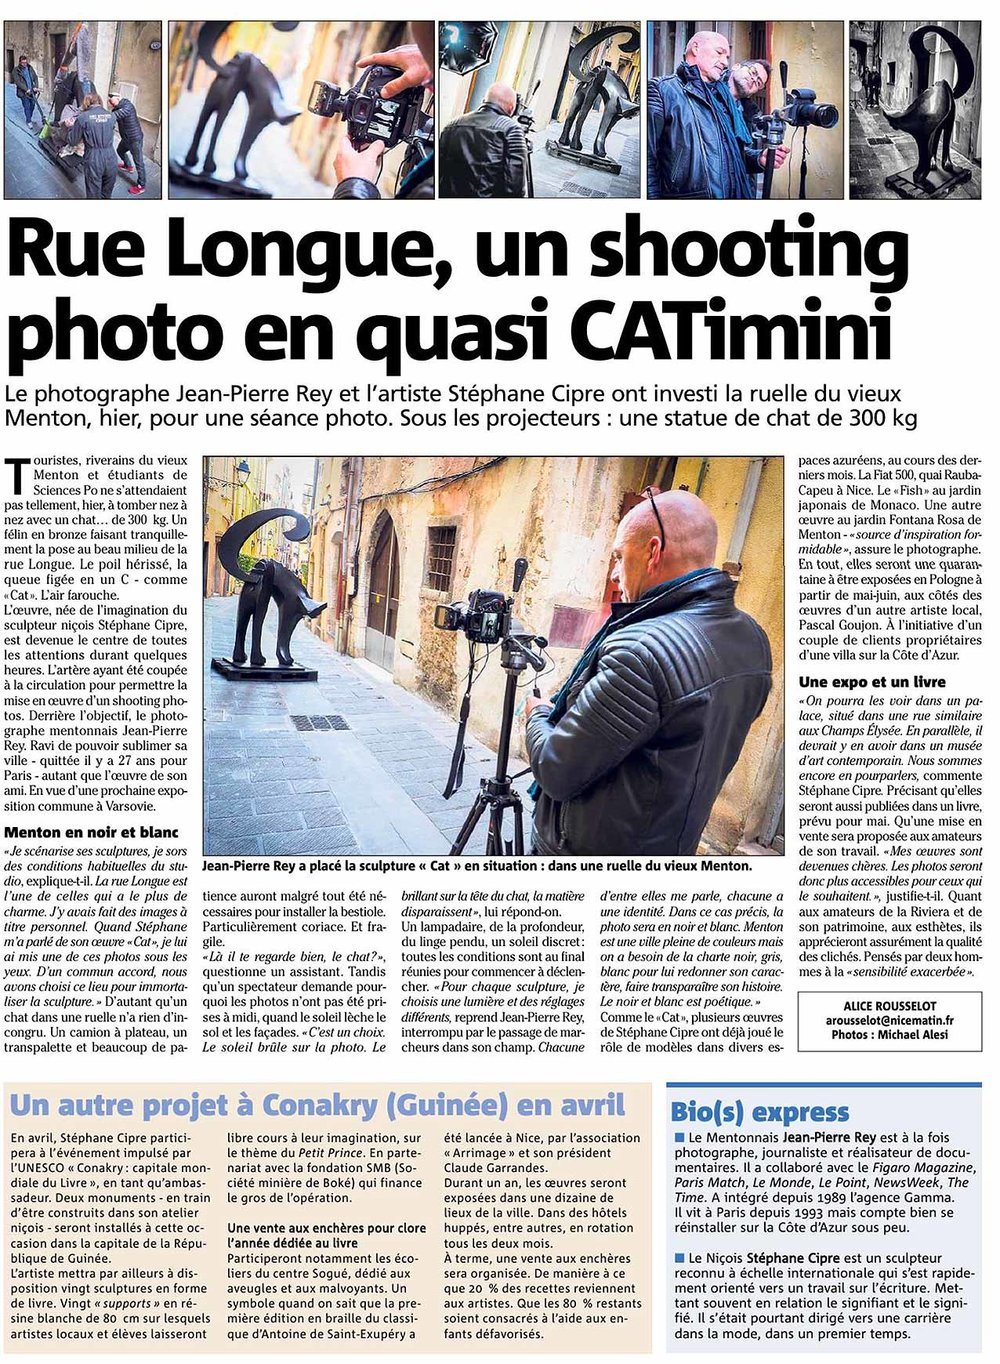 cipre_artiste_sculpteur_parution_nice_matin_21_fevrier_2017_article_shooting_cat_menton.jpg